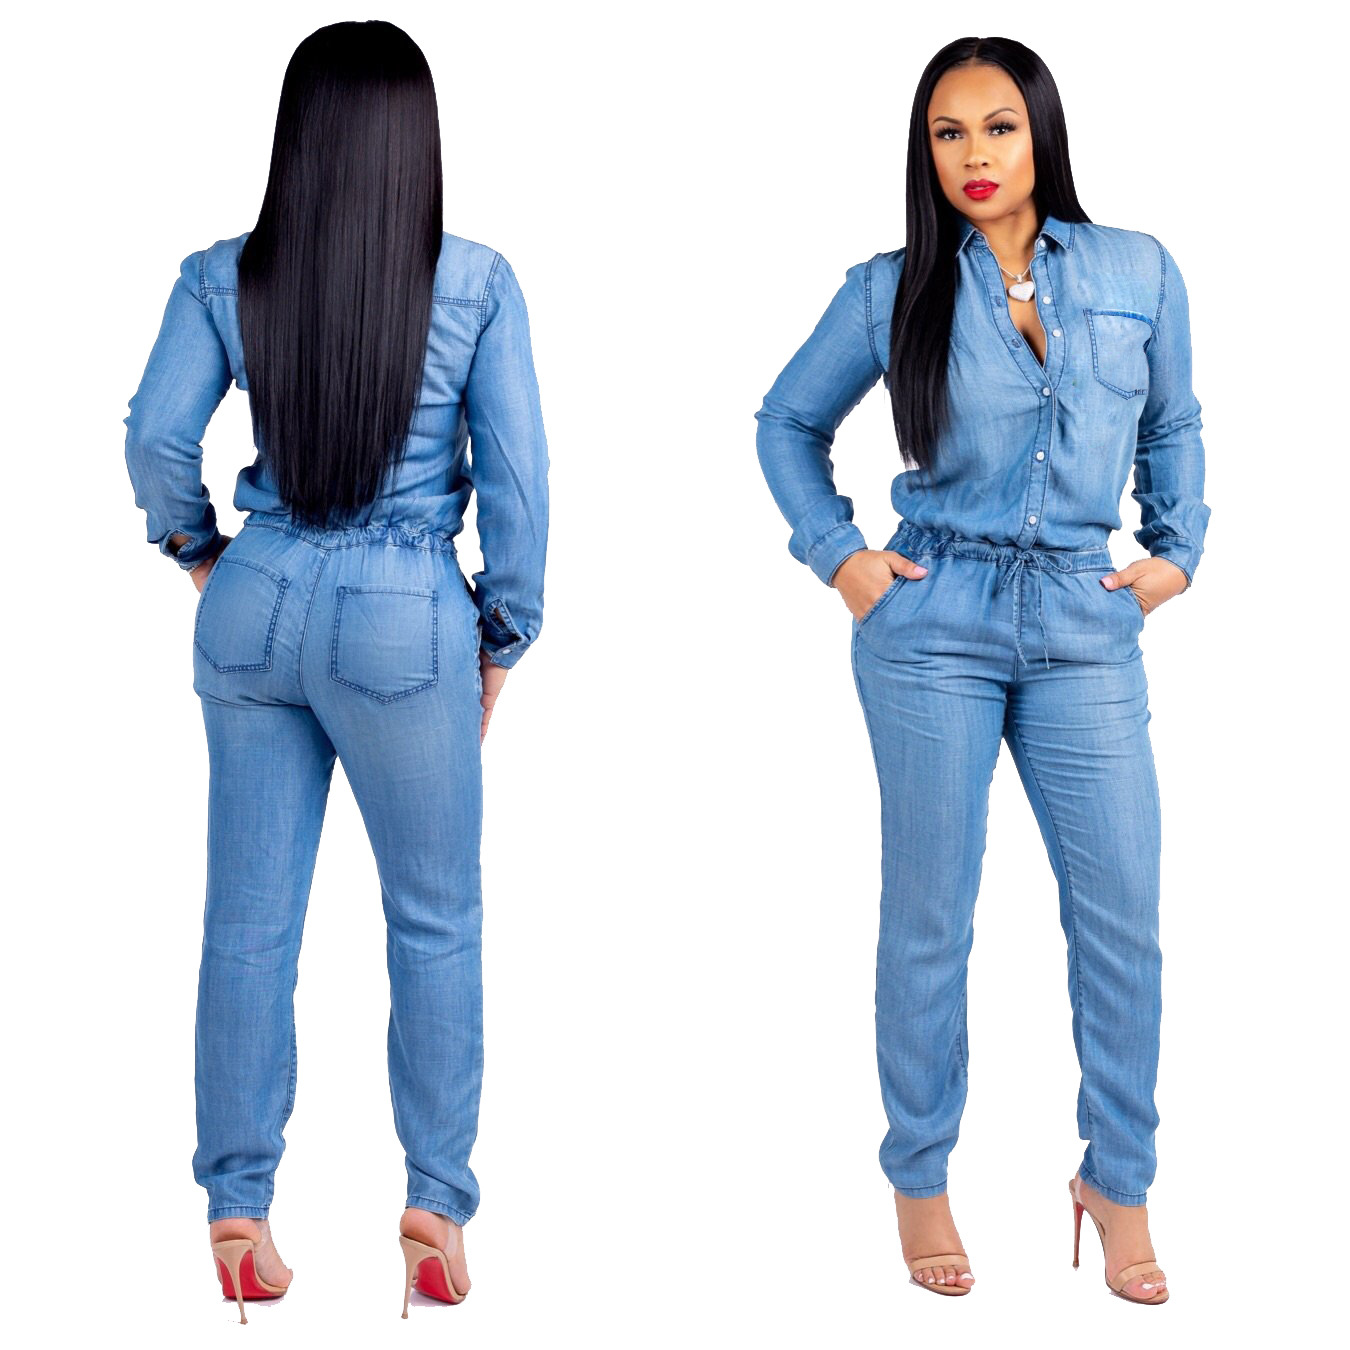 2019 European and American fashion jeans women's slim casual jumpsuit plus size  jeans woman streetwear